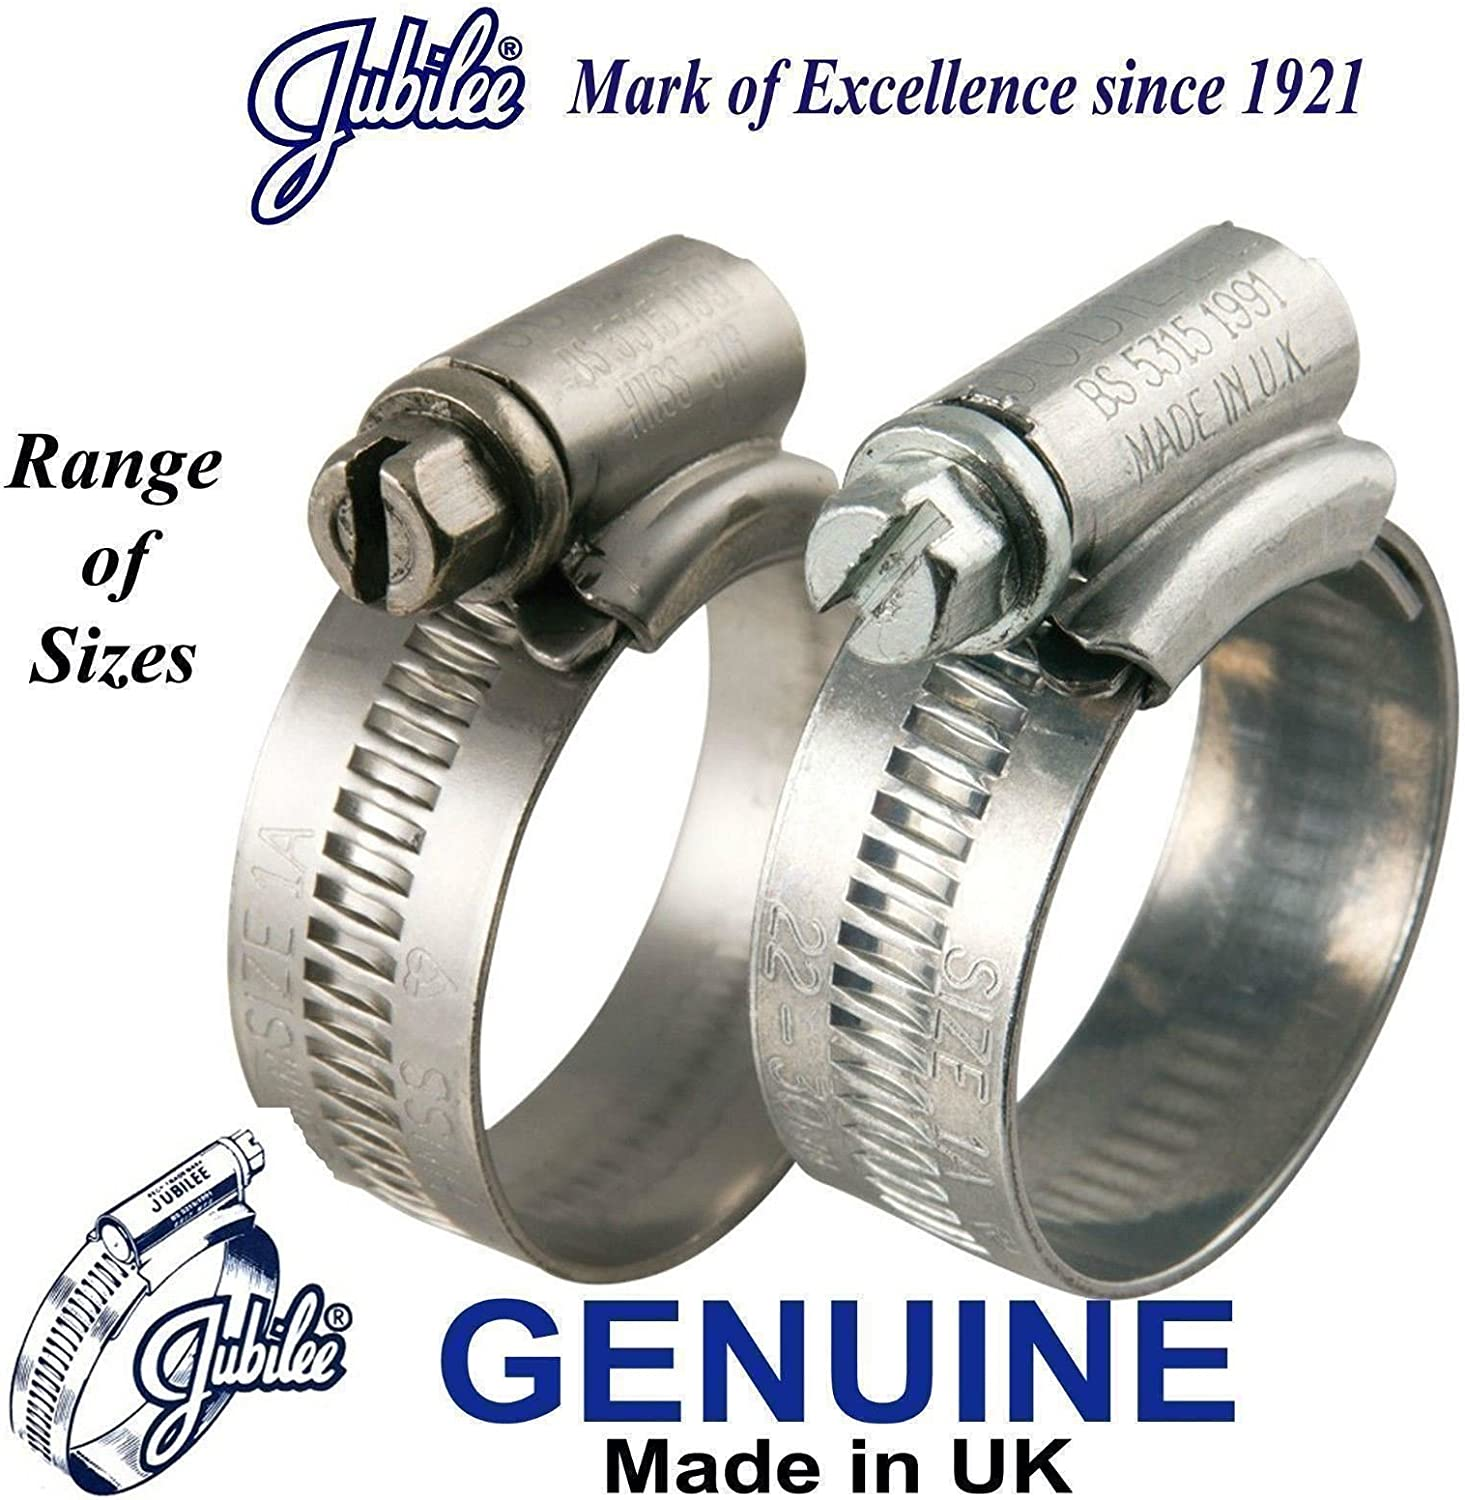 Jubilee/® Clip Marine Grade Stainless Steel SS316 Hose Clamp 35-50mm x 2